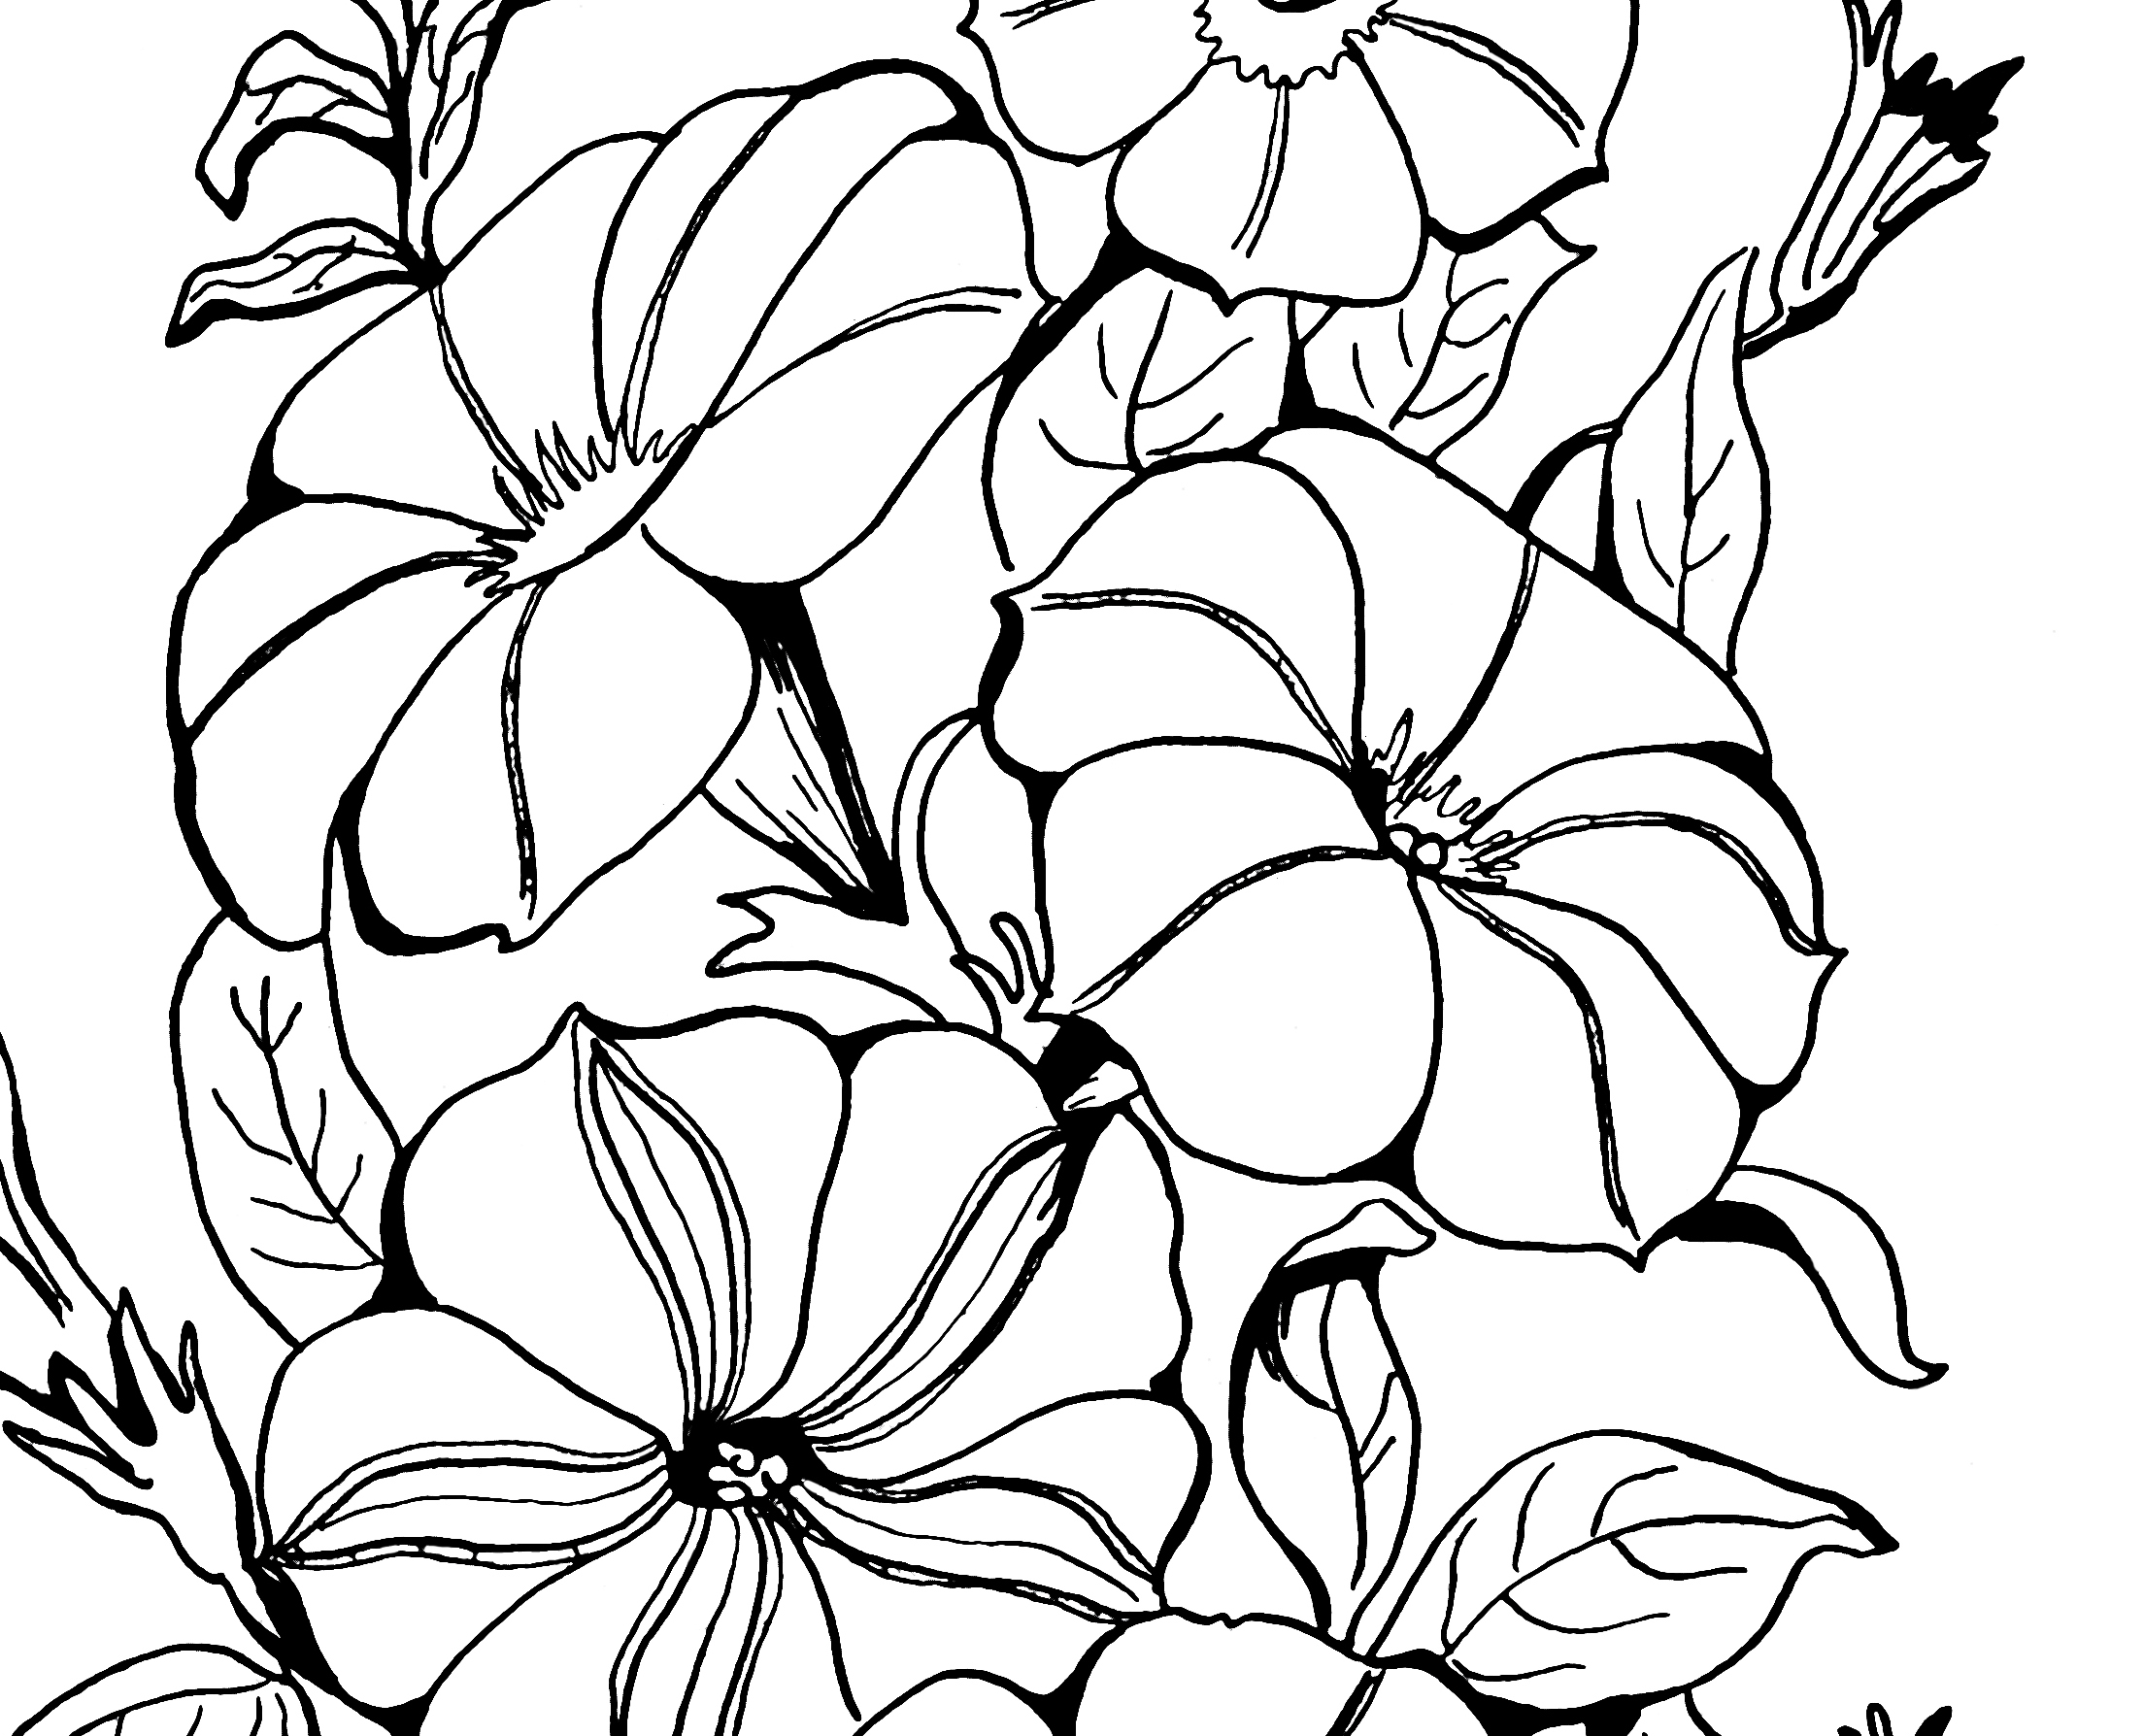 graphic art coloring pages free printable coloring pages for adults only pdf clip art pages coloring graphic